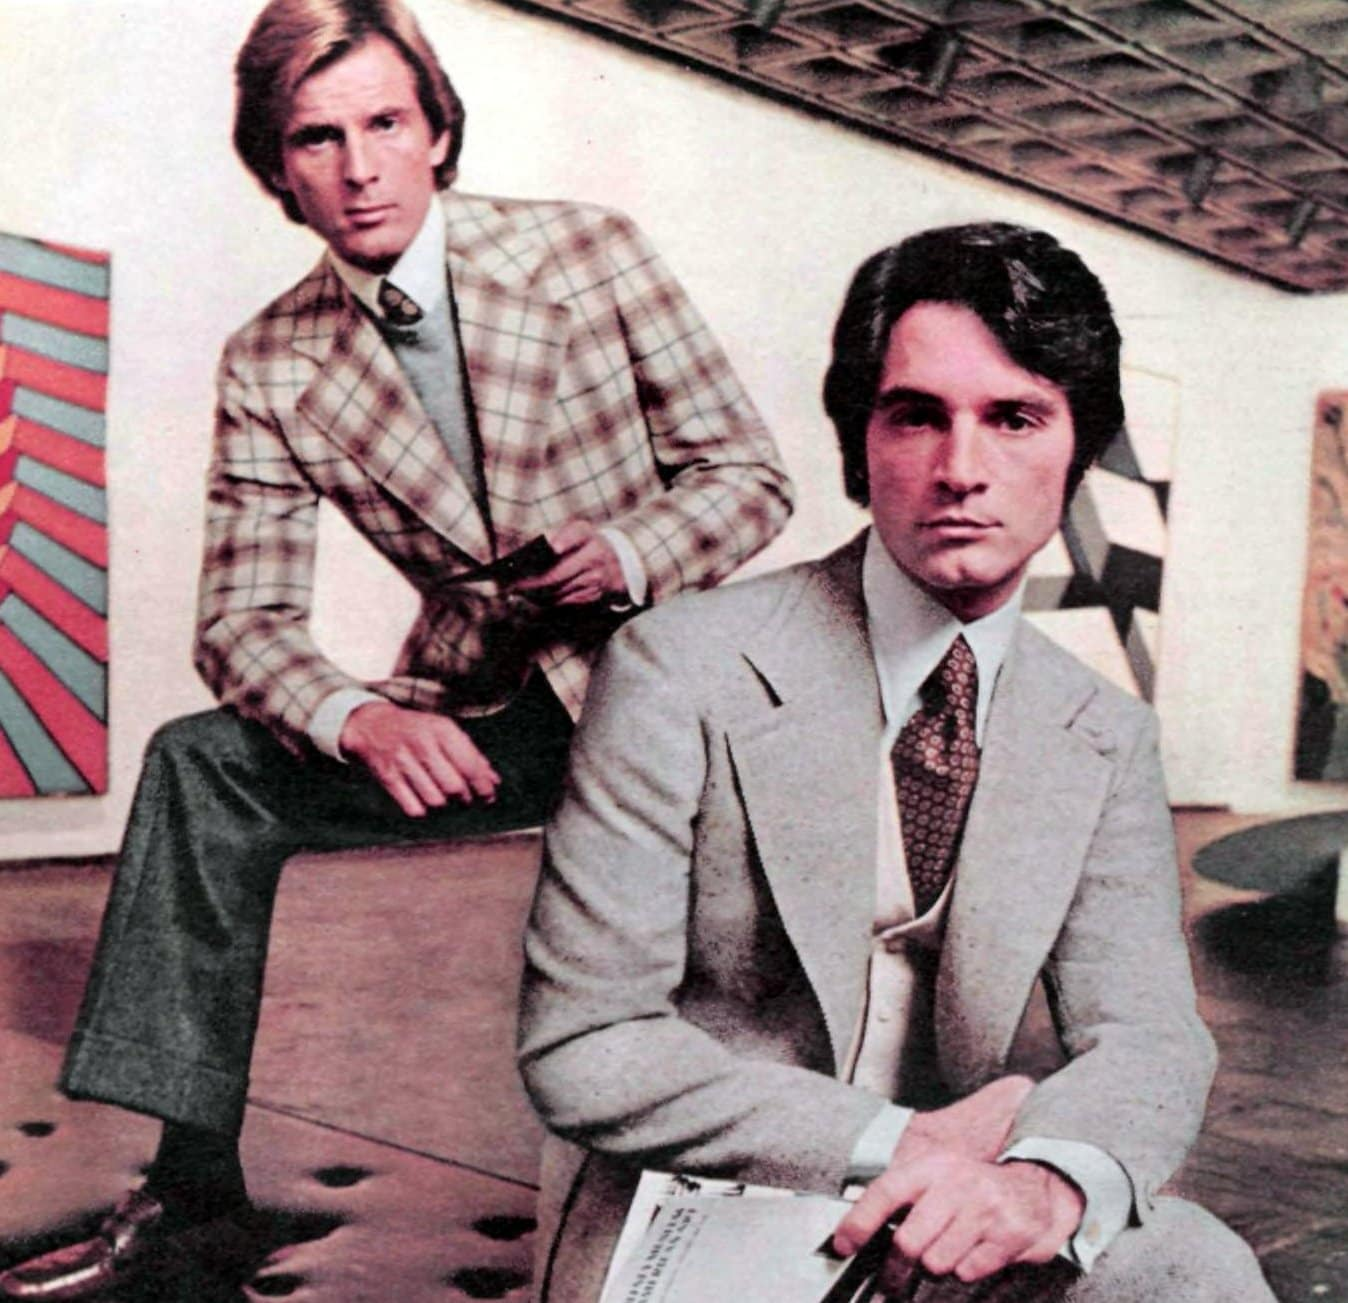 Retro seventies casual suits for guys (1974)